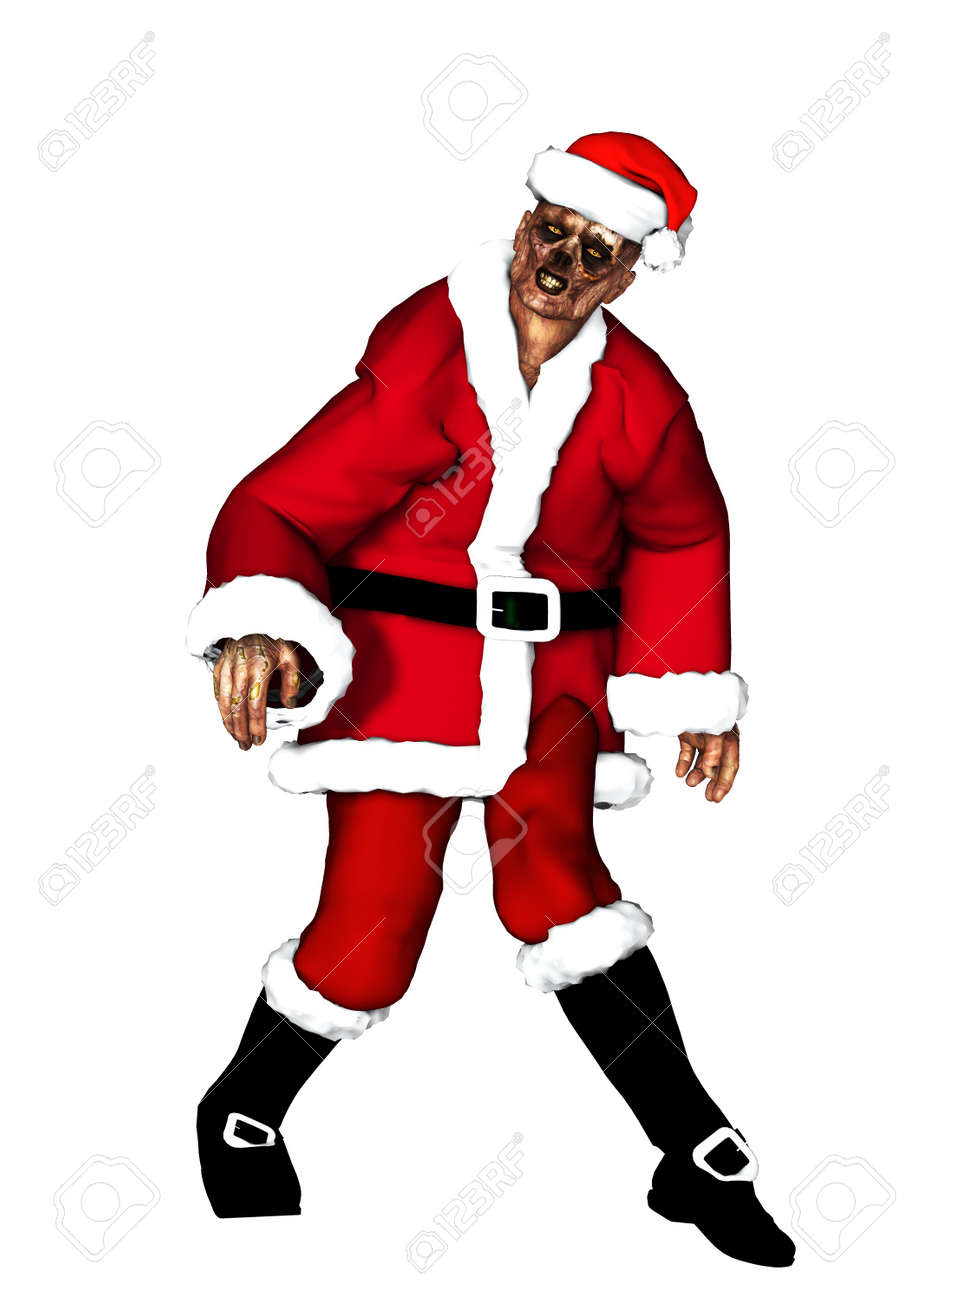 A festive Zombie for the Christmas Holiday Stock Photo - 16879359